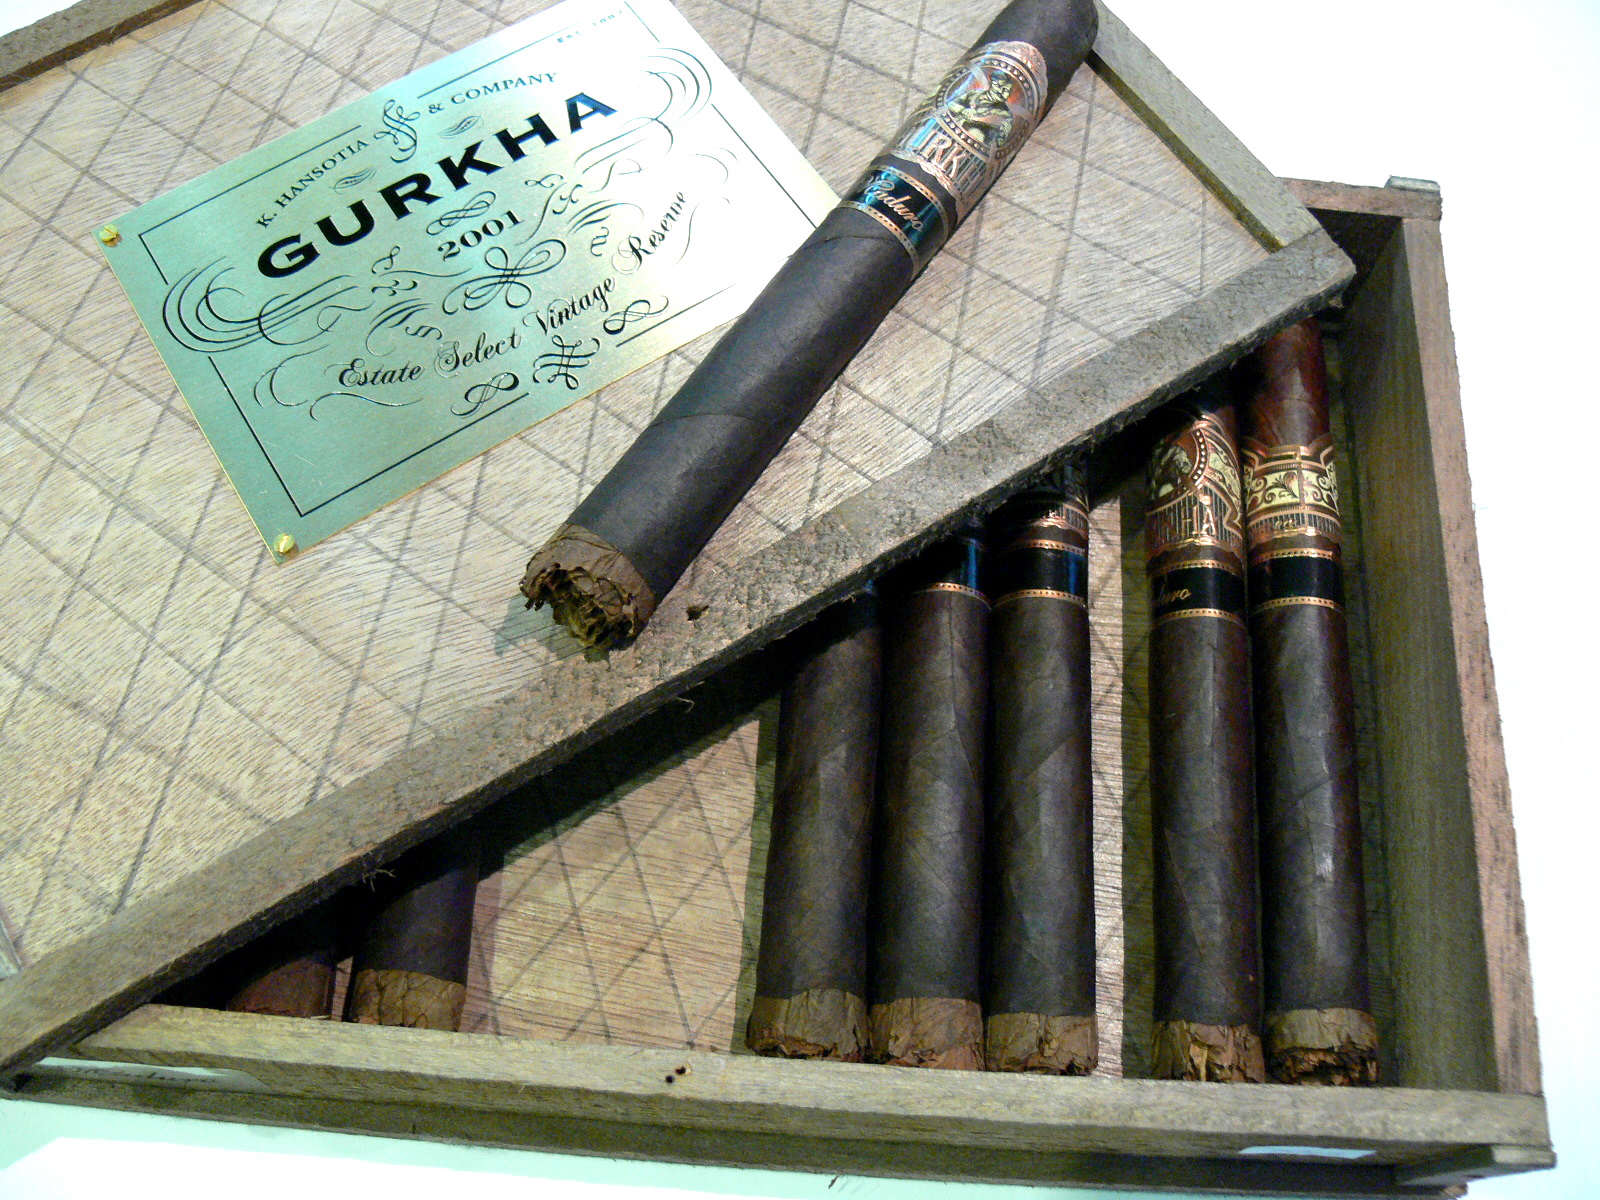 Gurkha Madur Estate Select Vintage 2001 Reserve